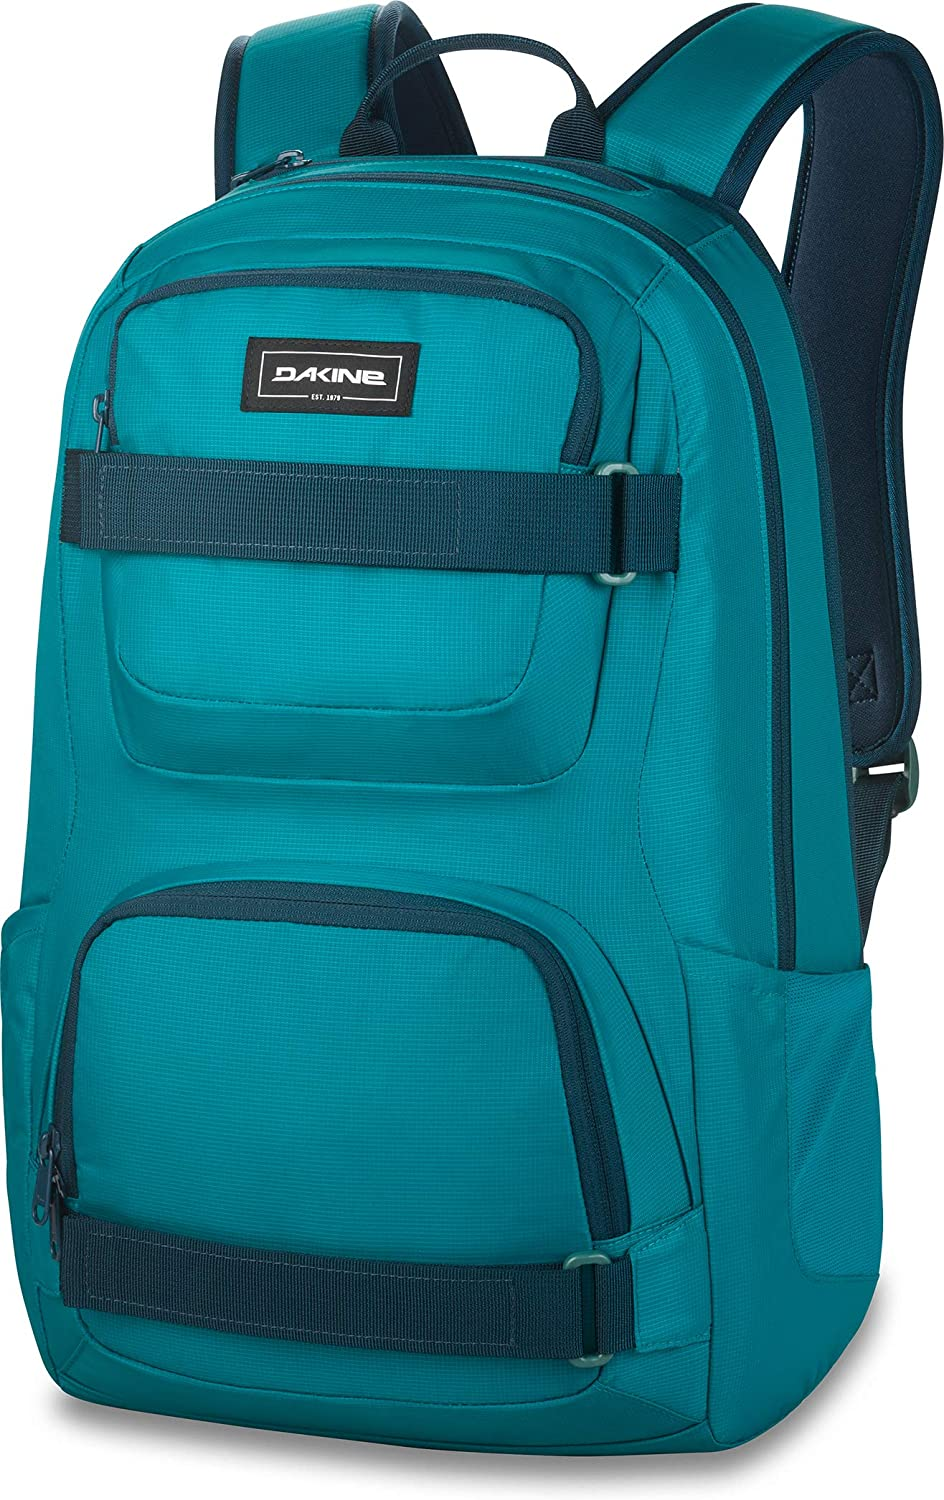 Dakine mens Laptop